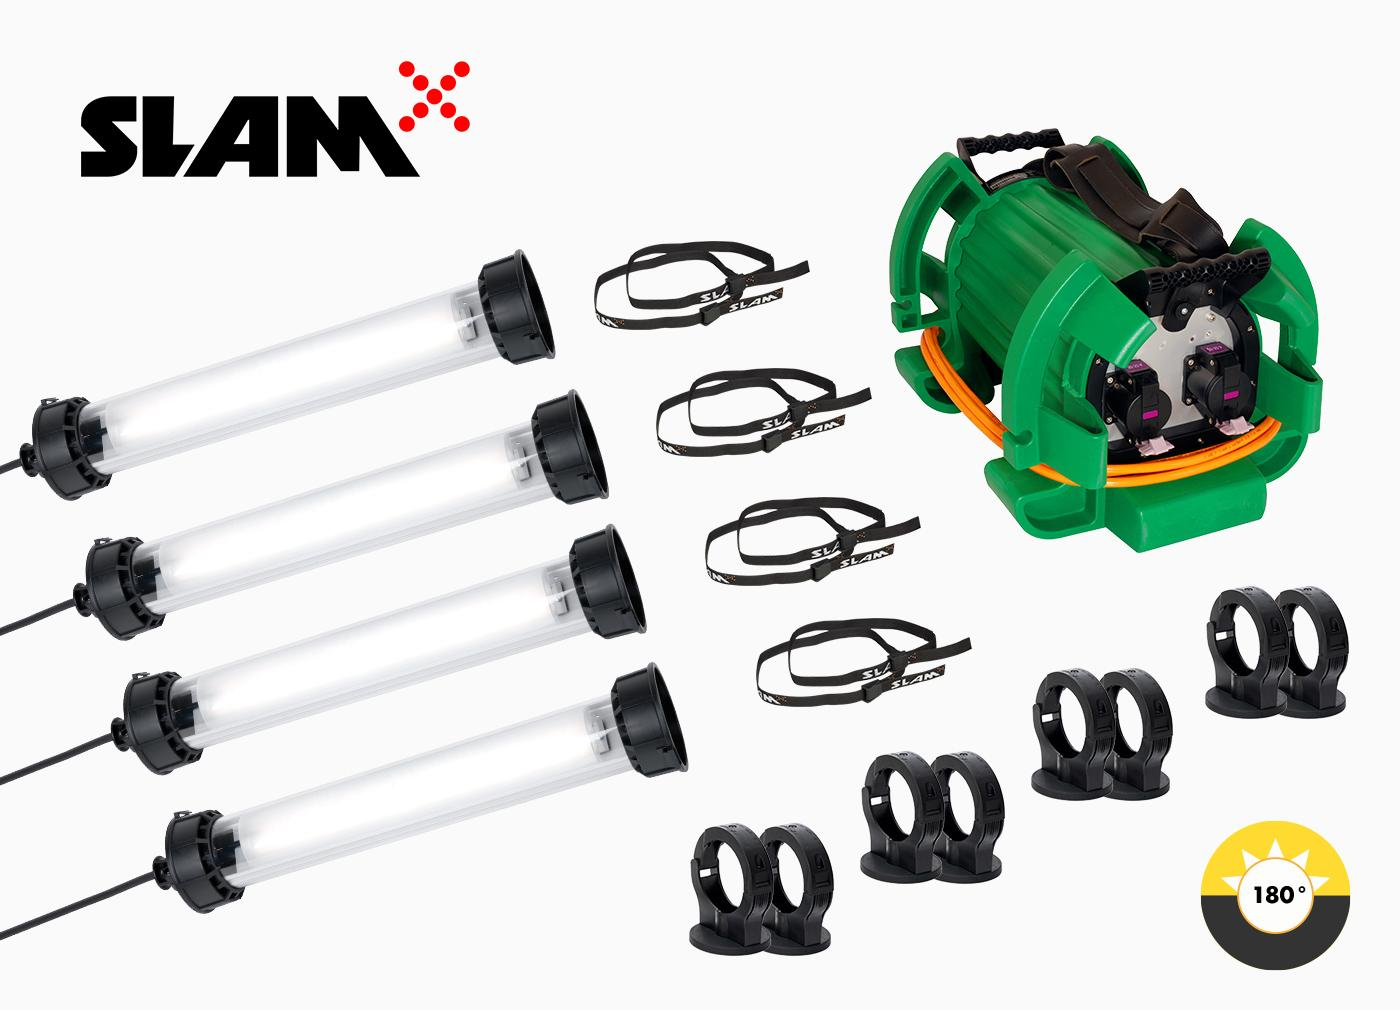 All items included to SLAM 12VAC ATEX Tank Set